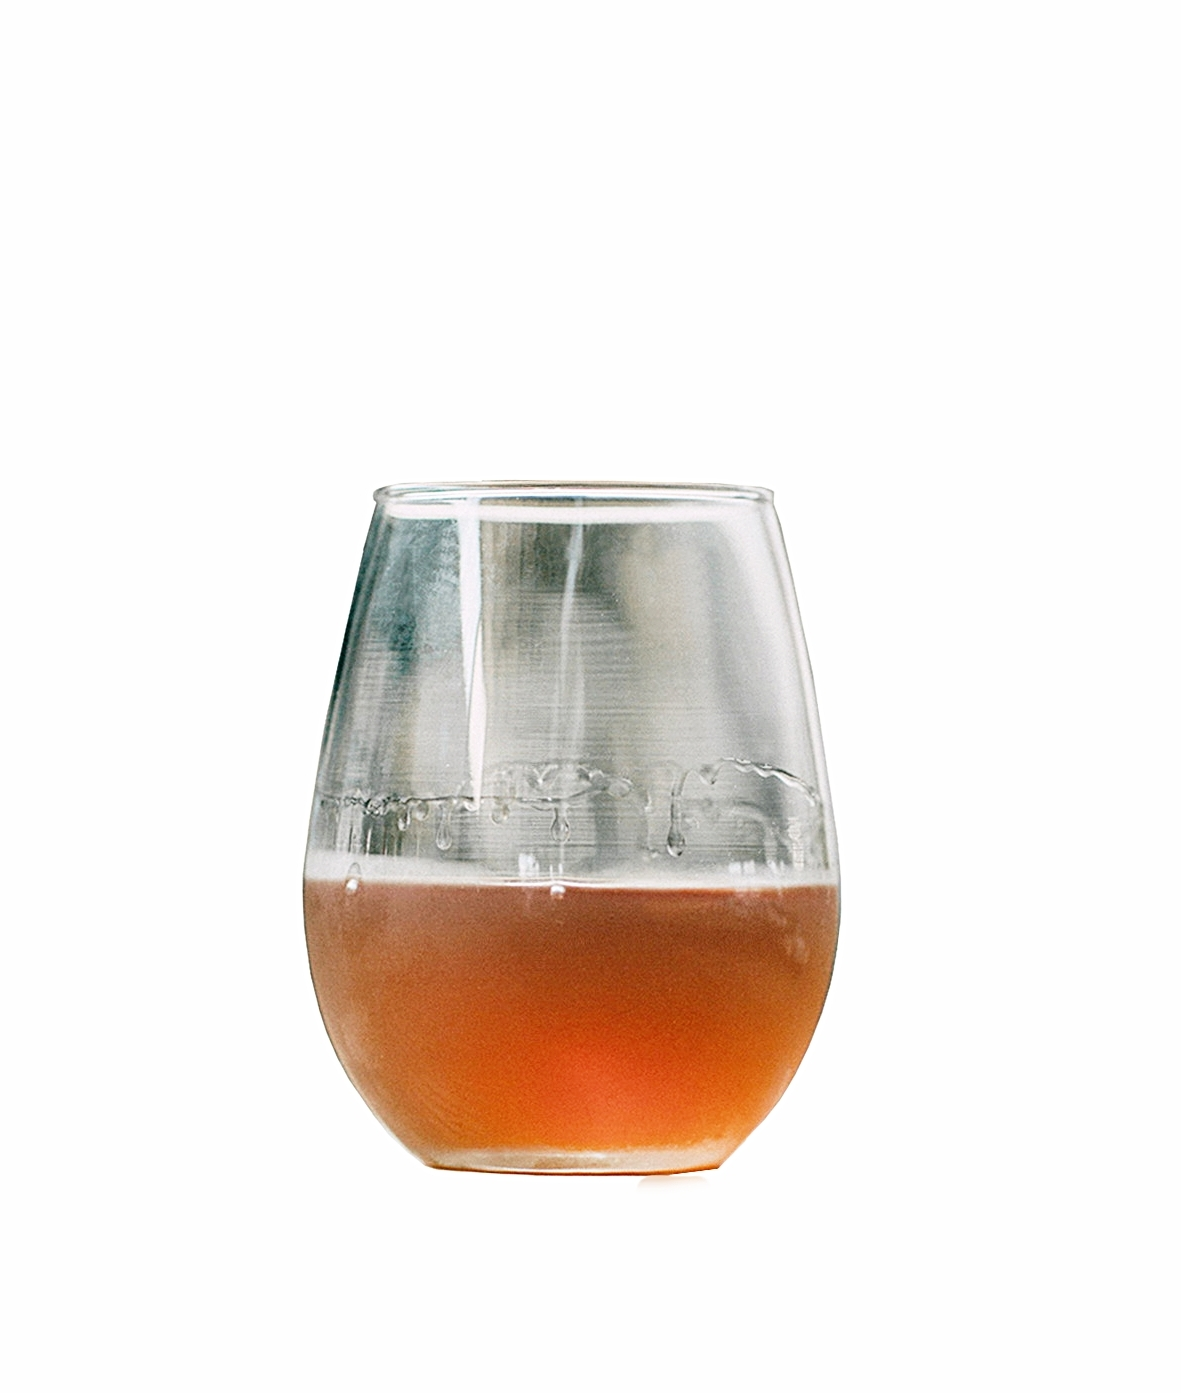 REVOLVER  4ml Orange Bitters 16ml Norseman Coffee Liqueur 80ml Whiskey   Stir ingredients over ice and decant into a stemless wine glass. Float a large ice cube as garnish.